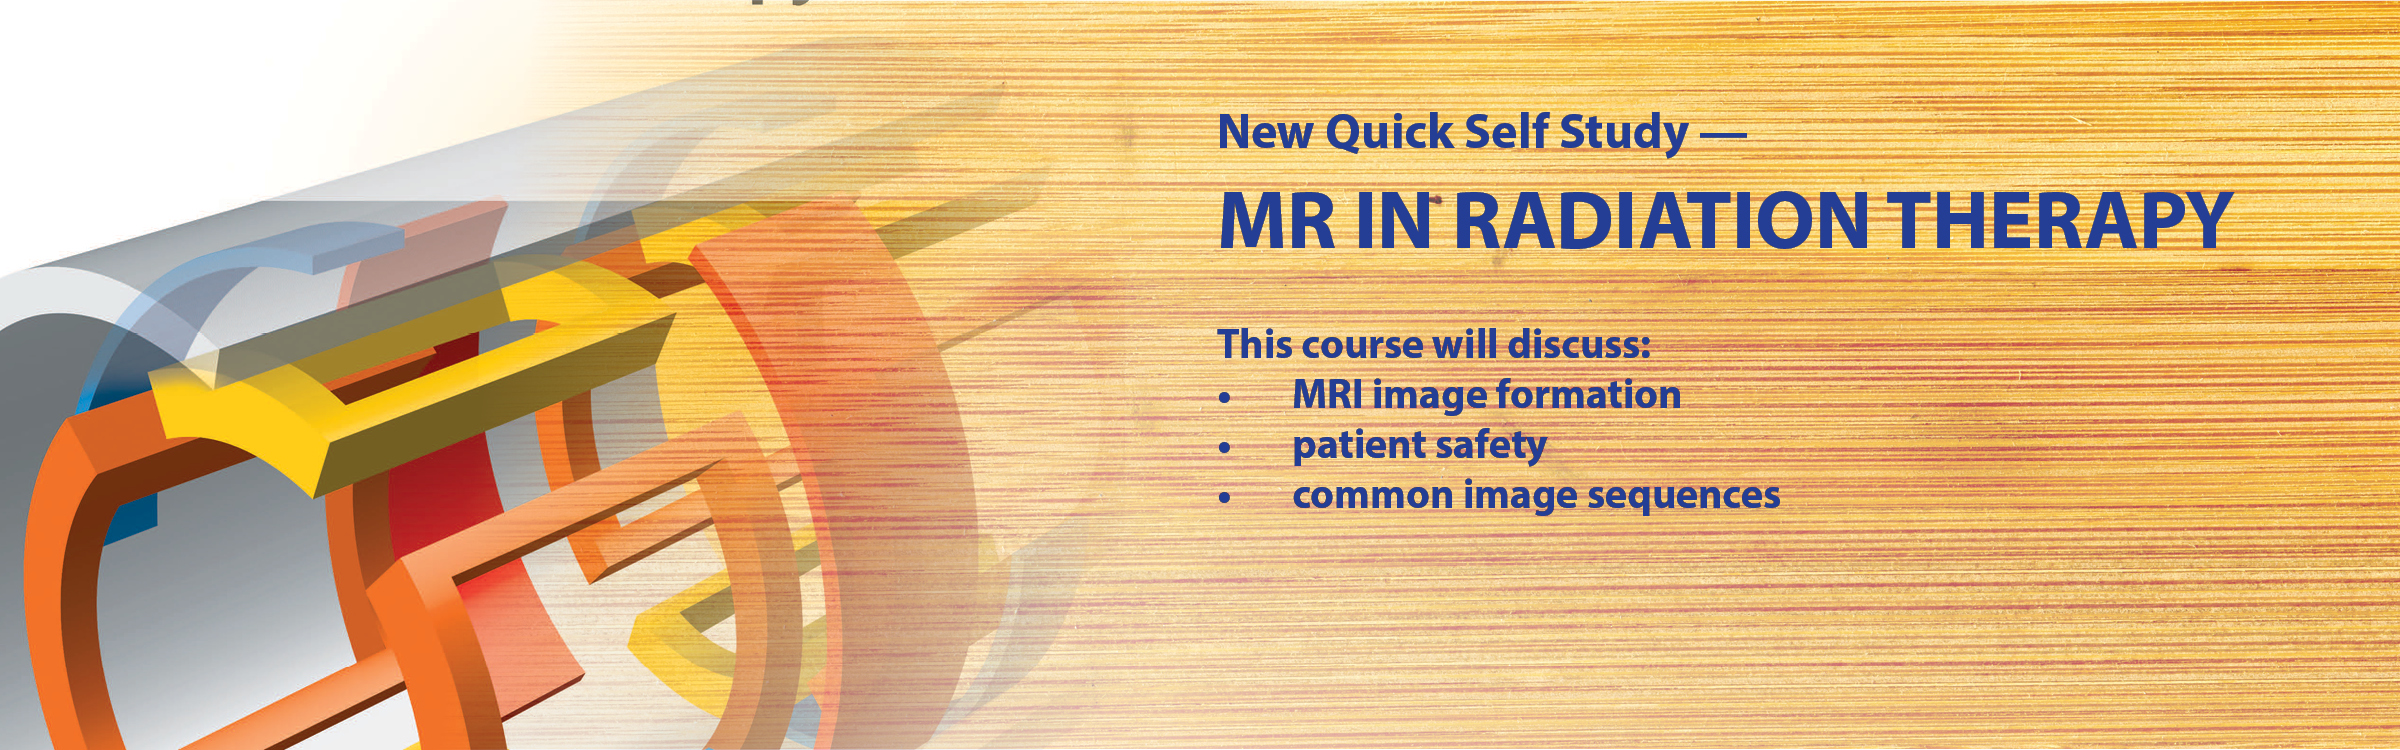 NEW-QSS-MR-In-Radiaion-Therapy-